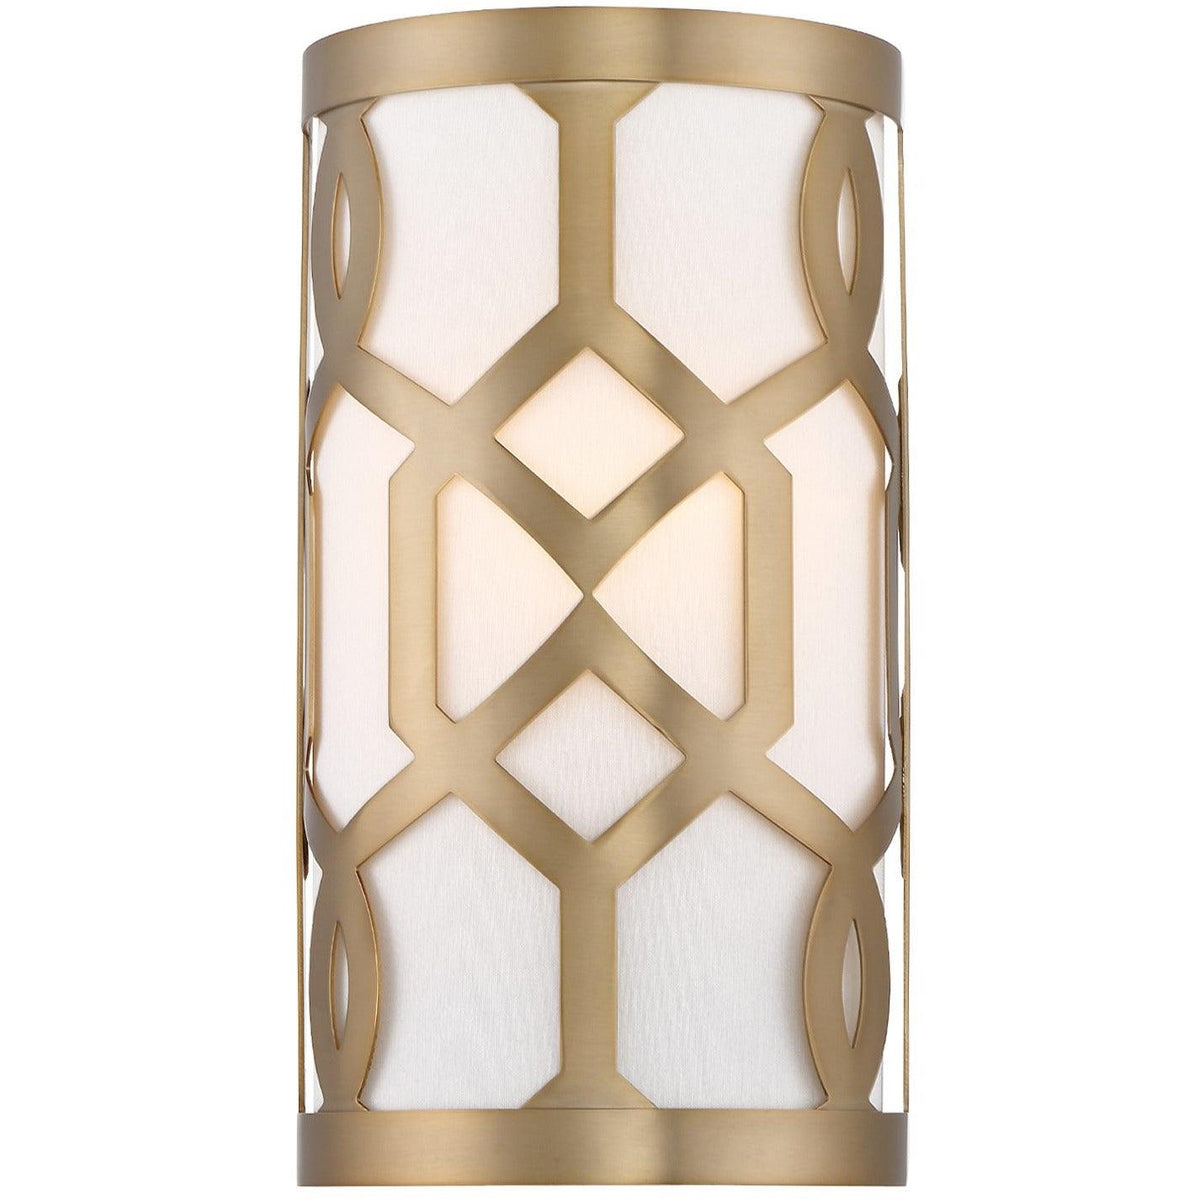 Crystorama - 2262-AG - One Light Wall Mount - Jennings - Aged Brass